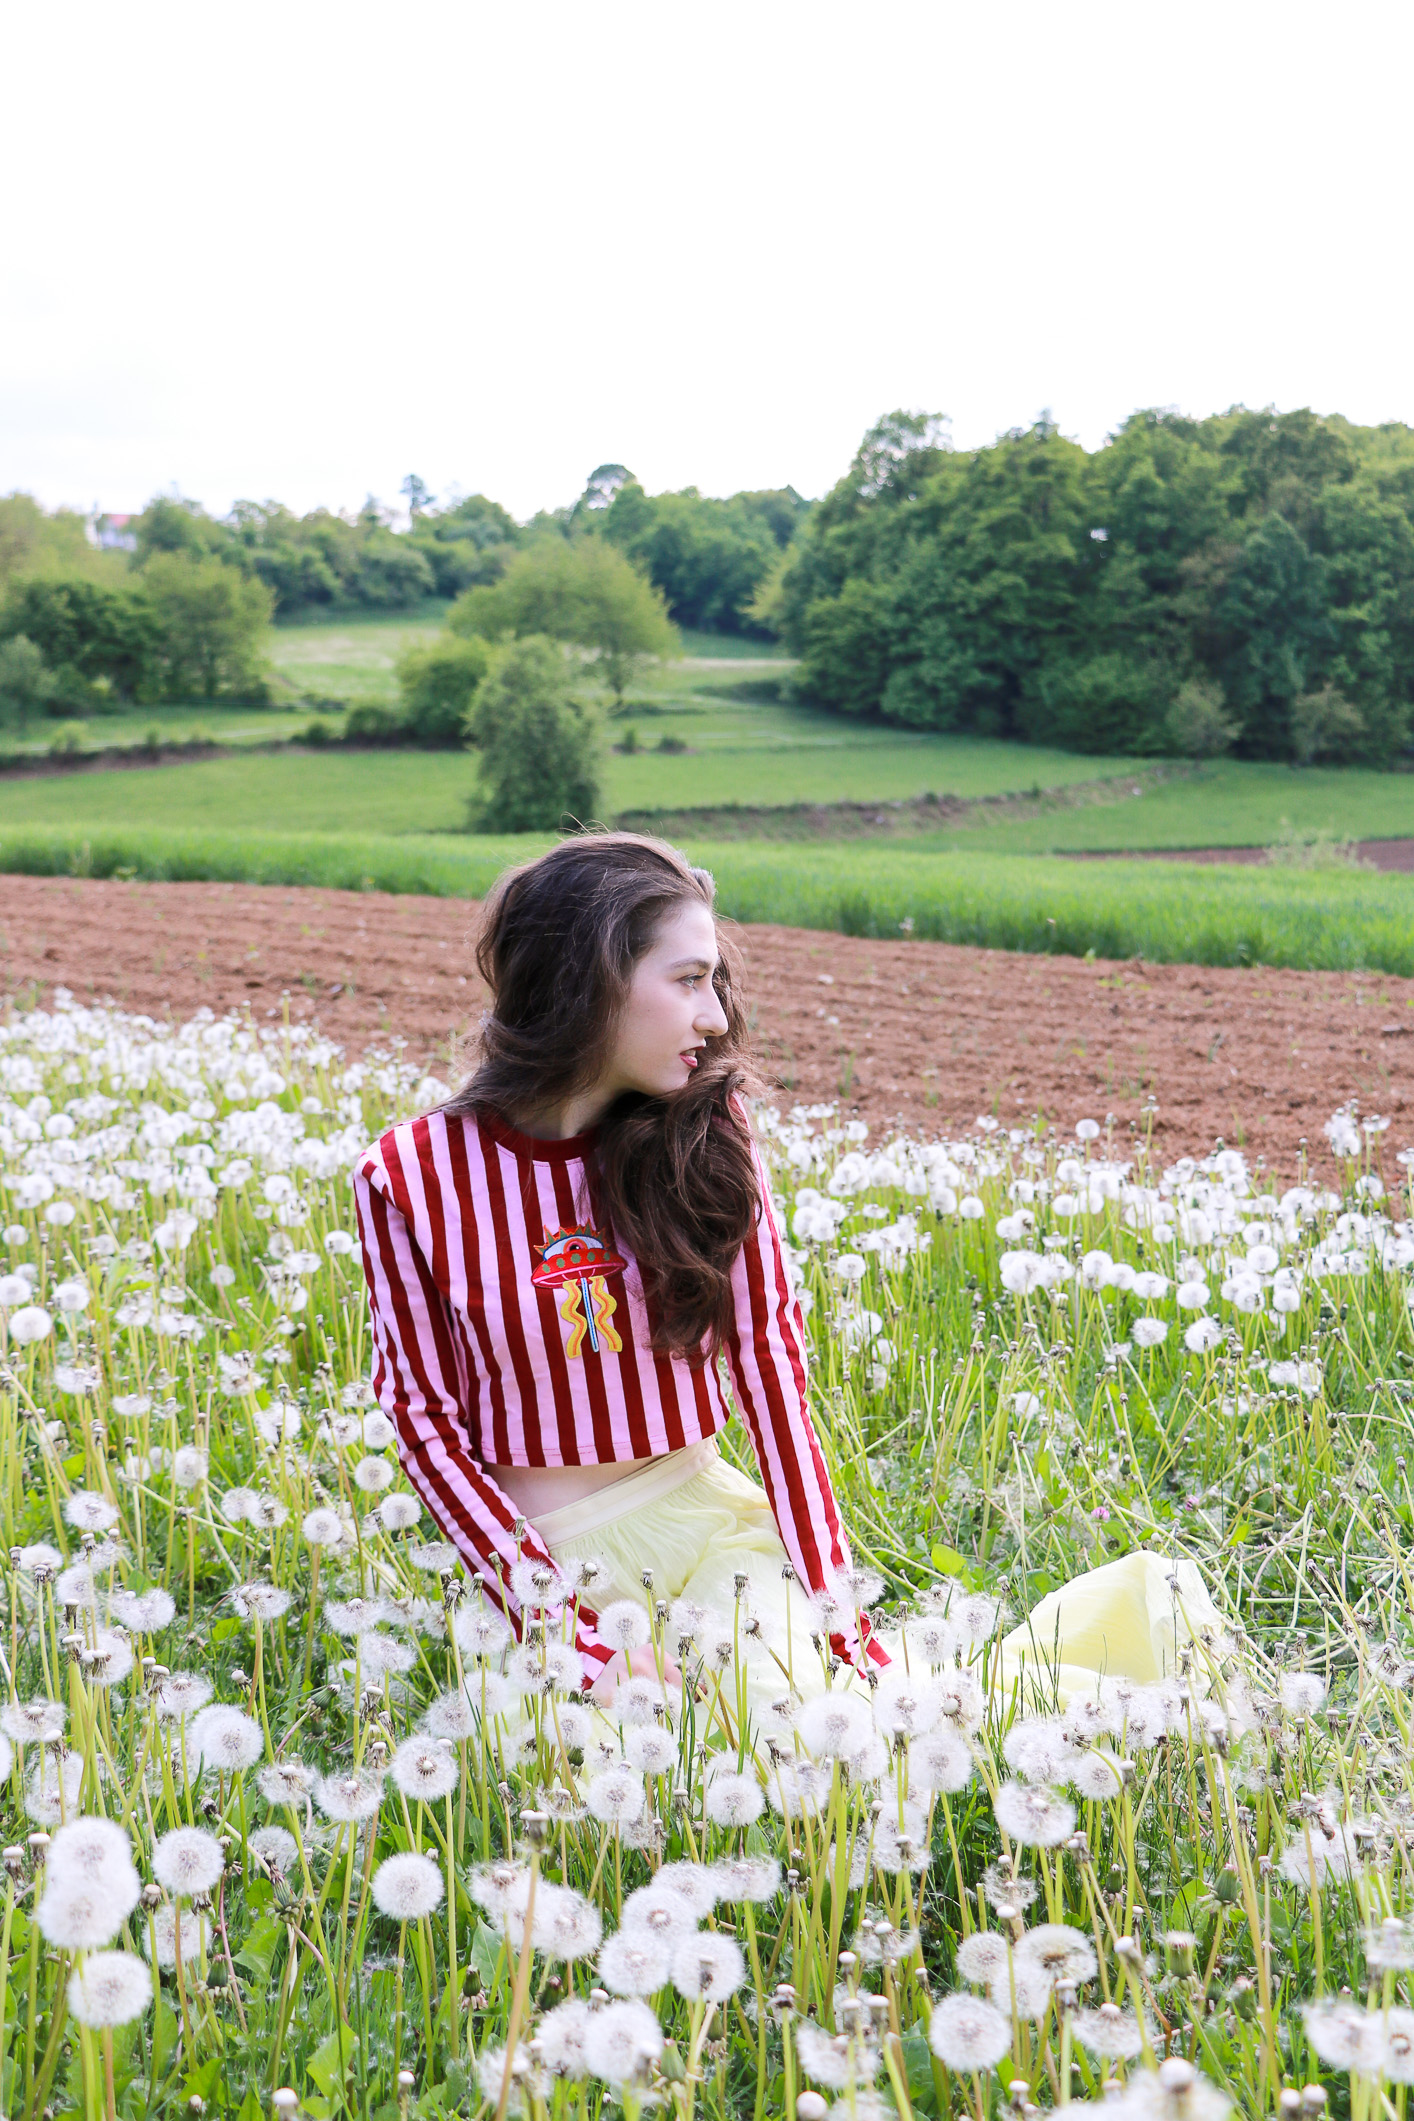 Fashion blogger Veronika Lipar of Brunette From Wall Street sitting in the field of dandelions making a wish dressed in long yellow tulle skirt and pink and red striped crop top